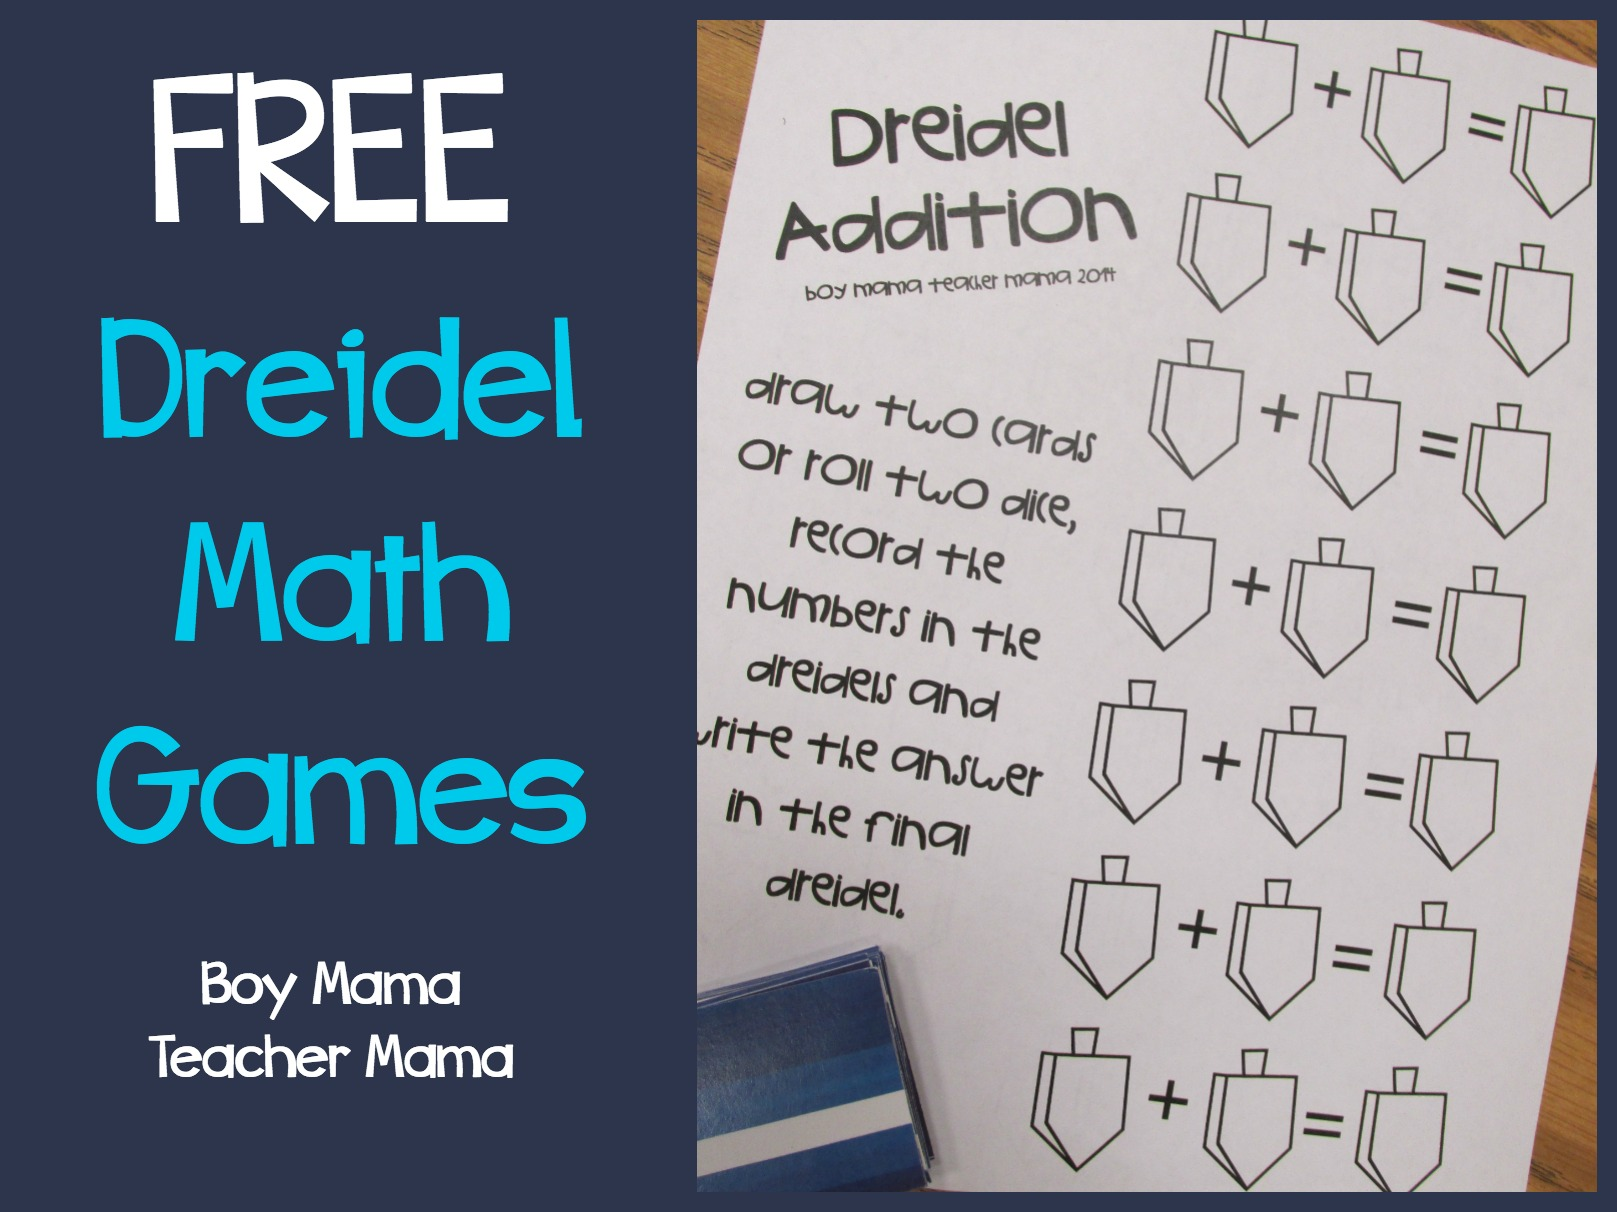 Boy Mama Teacher Mama FREE Dreidel Math Games